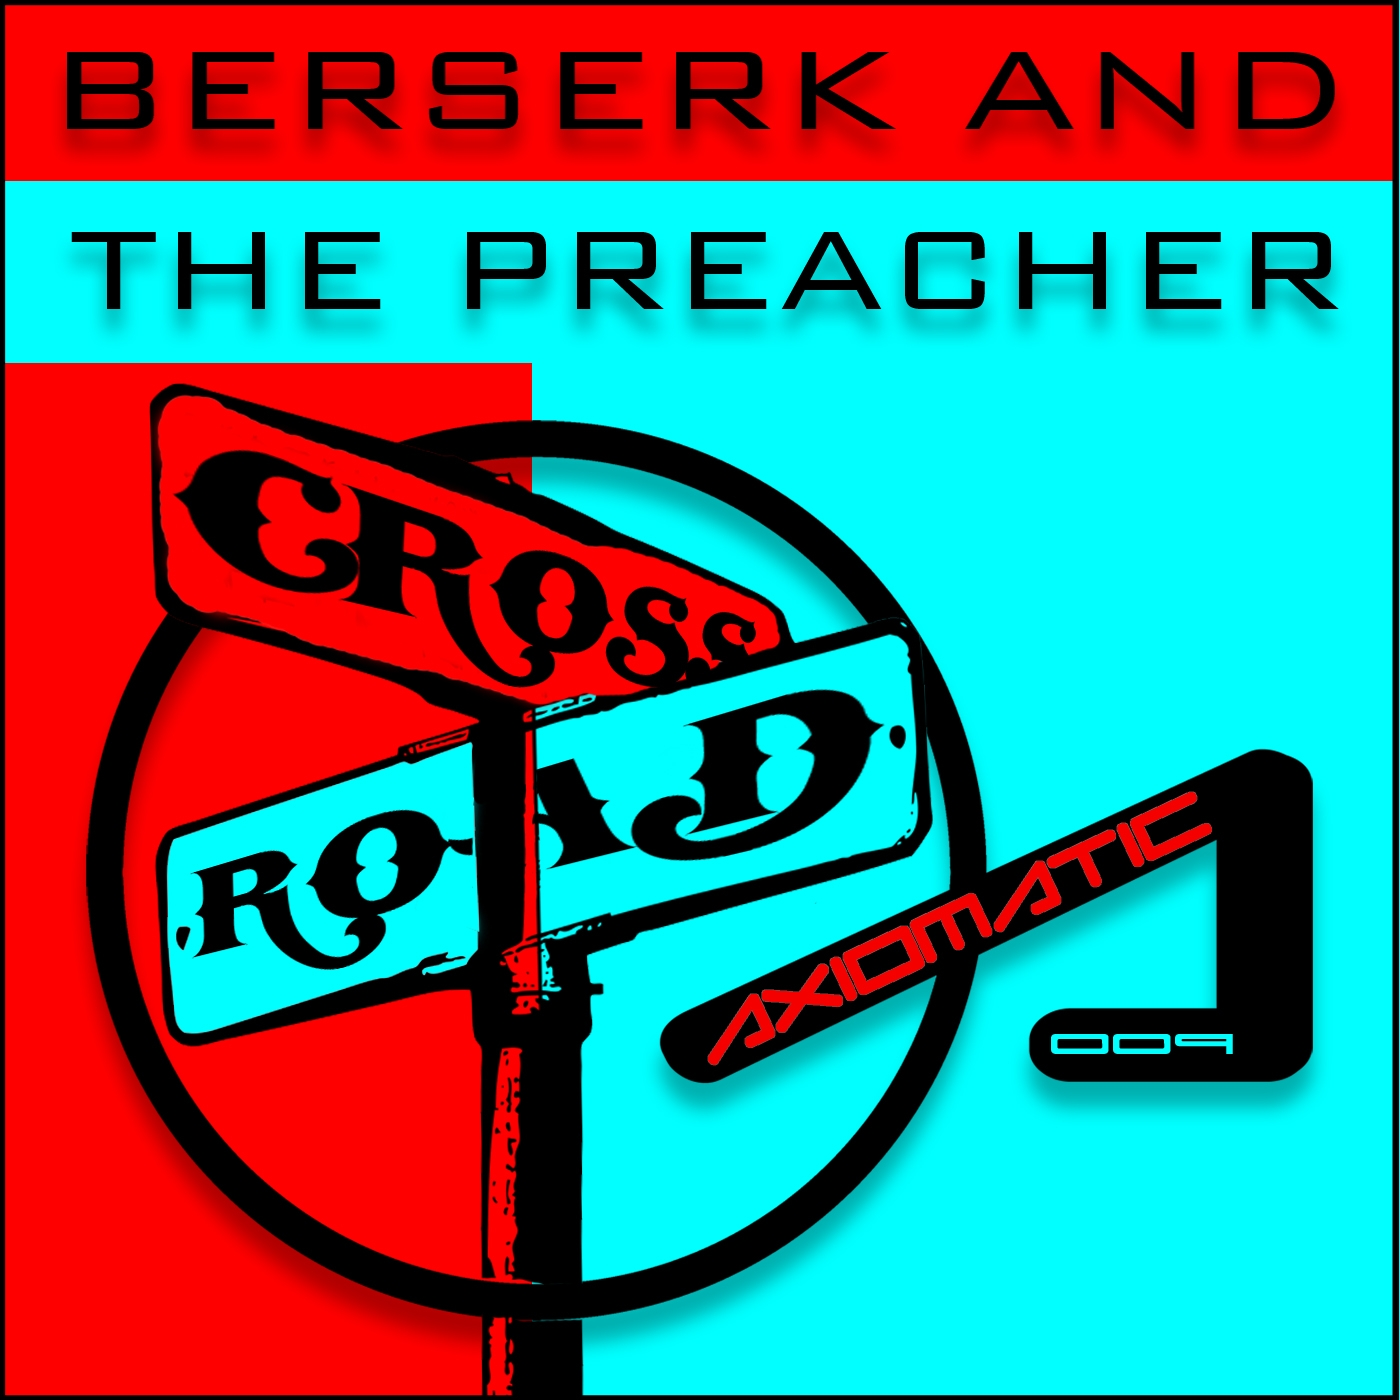 Berserk & The Preacher - Party Out Of Contro (Original mix)